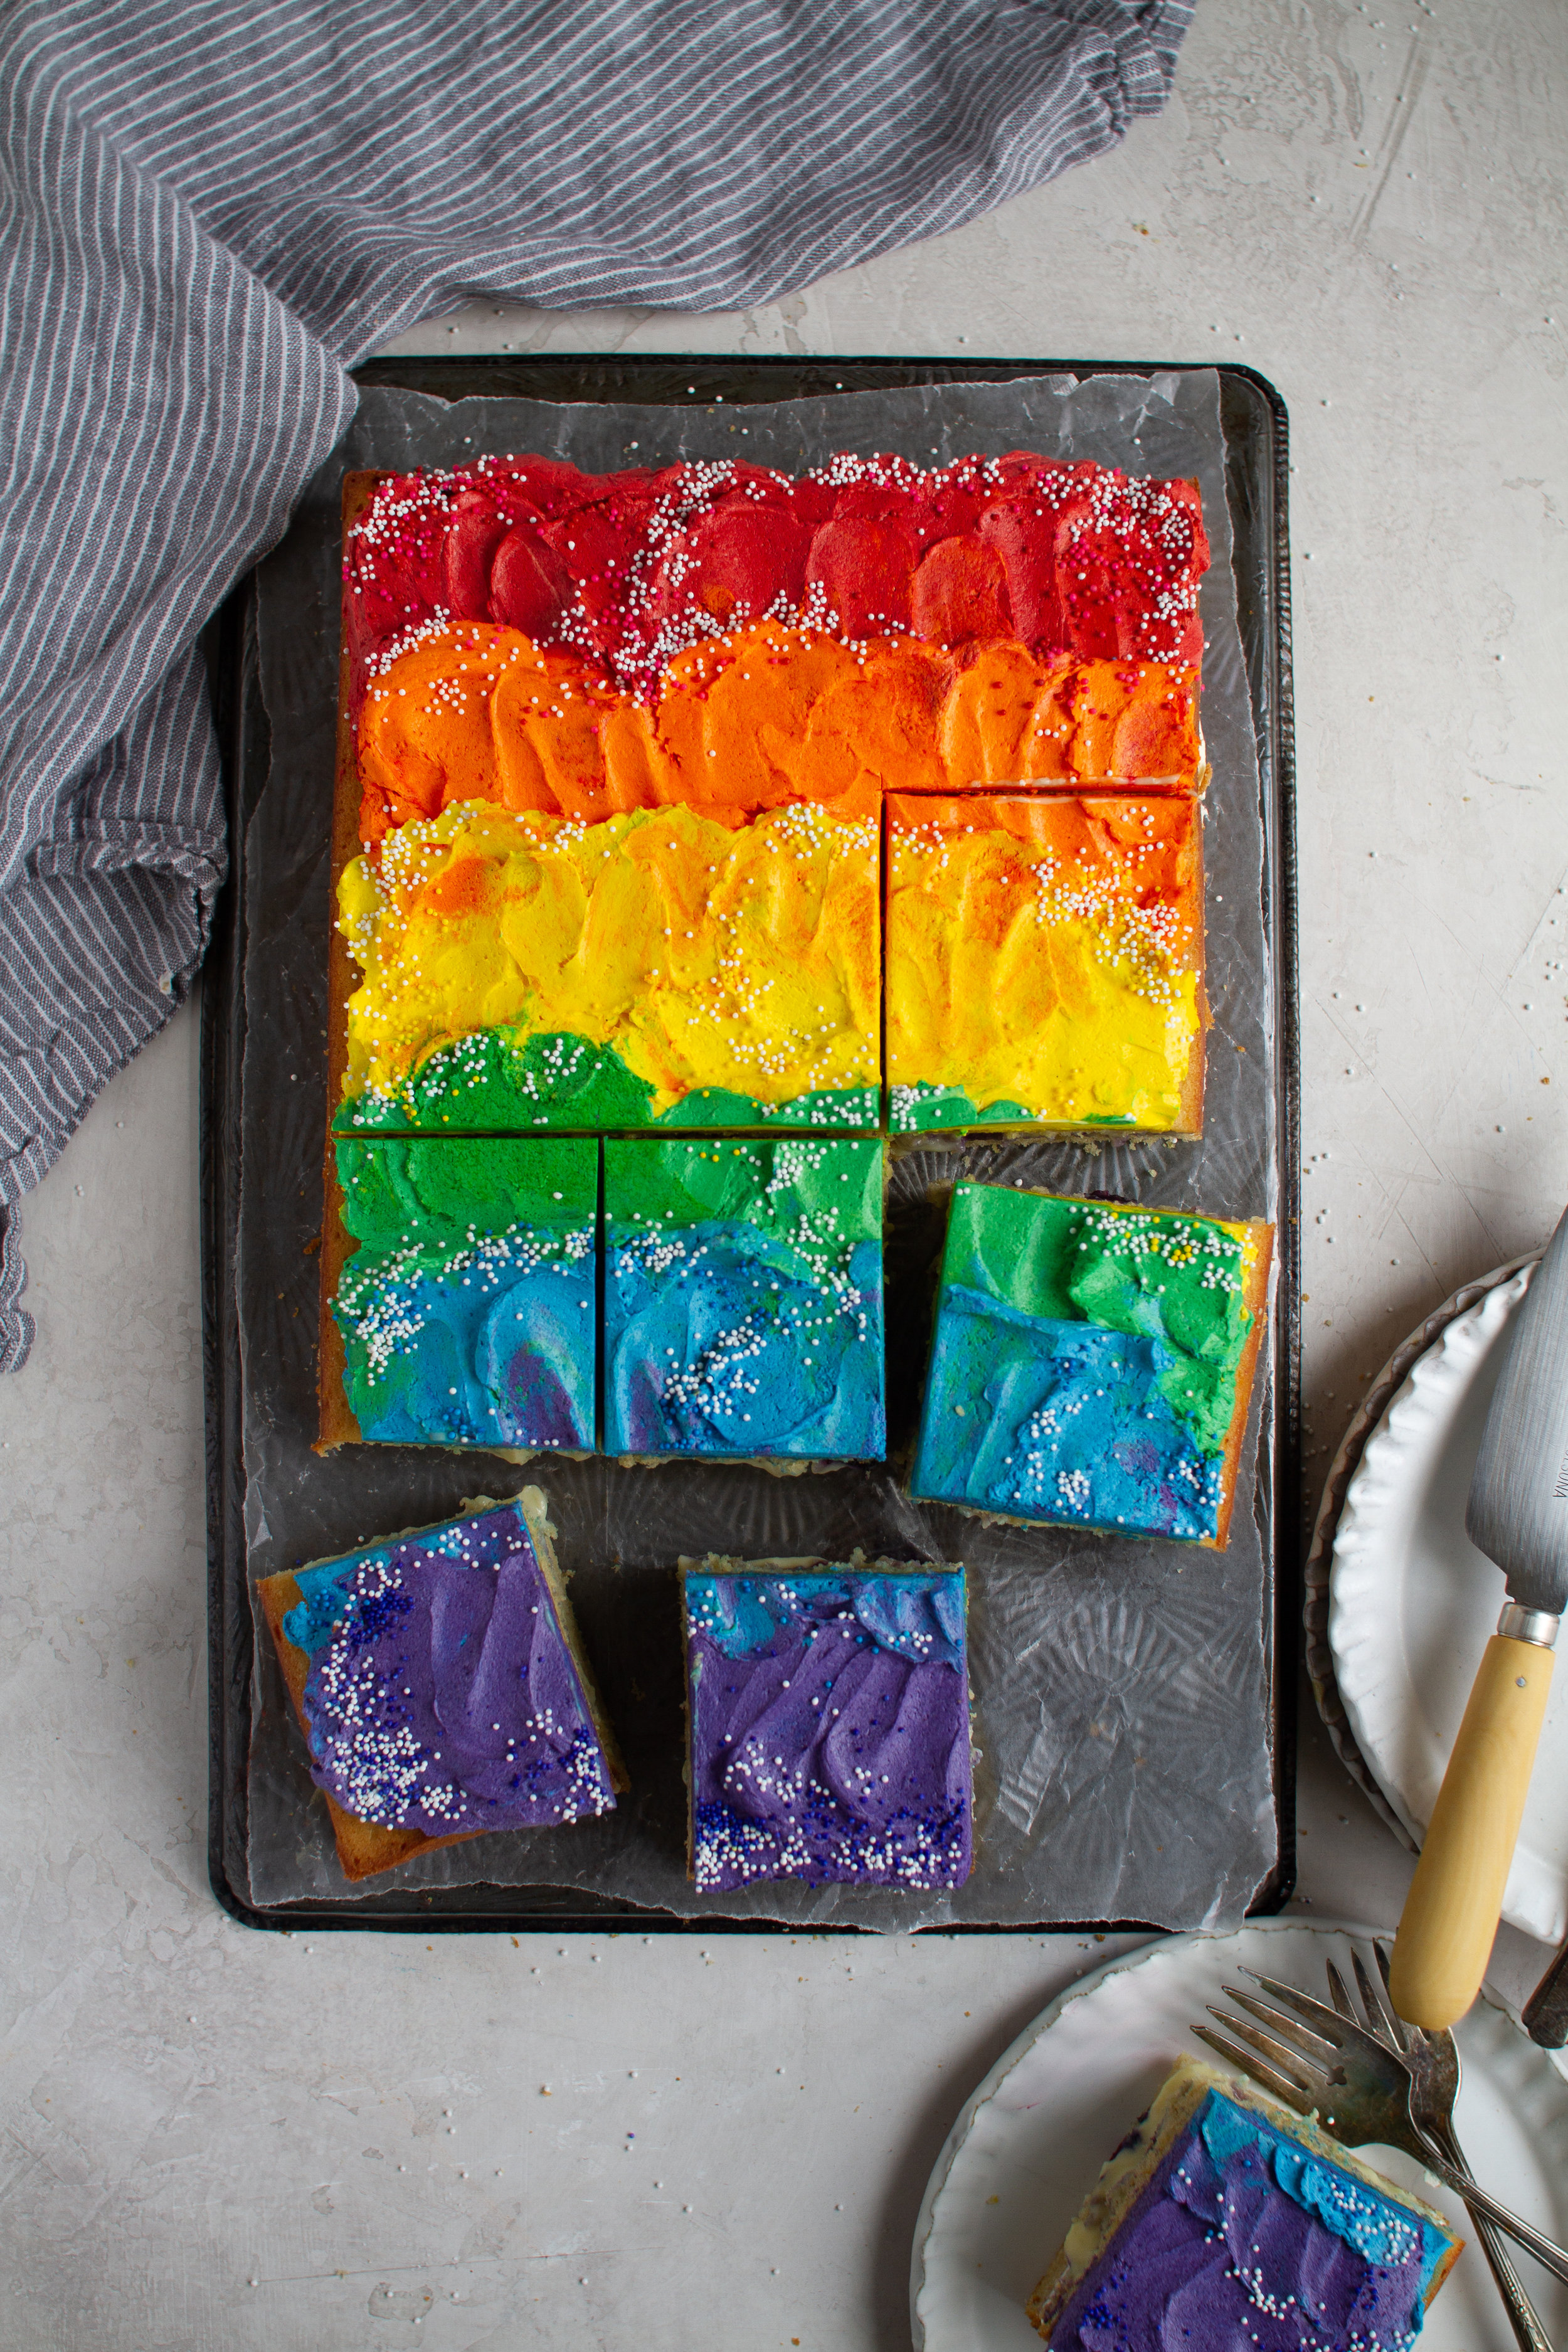 LGBTQ Rainbow Sheet Cake - lemon and ginger cake filled with a fresh blueberry compote, fresh thyme infused custard and finish with a quark cheese german buttercream! by Fox and Crane - foxandcrane.com